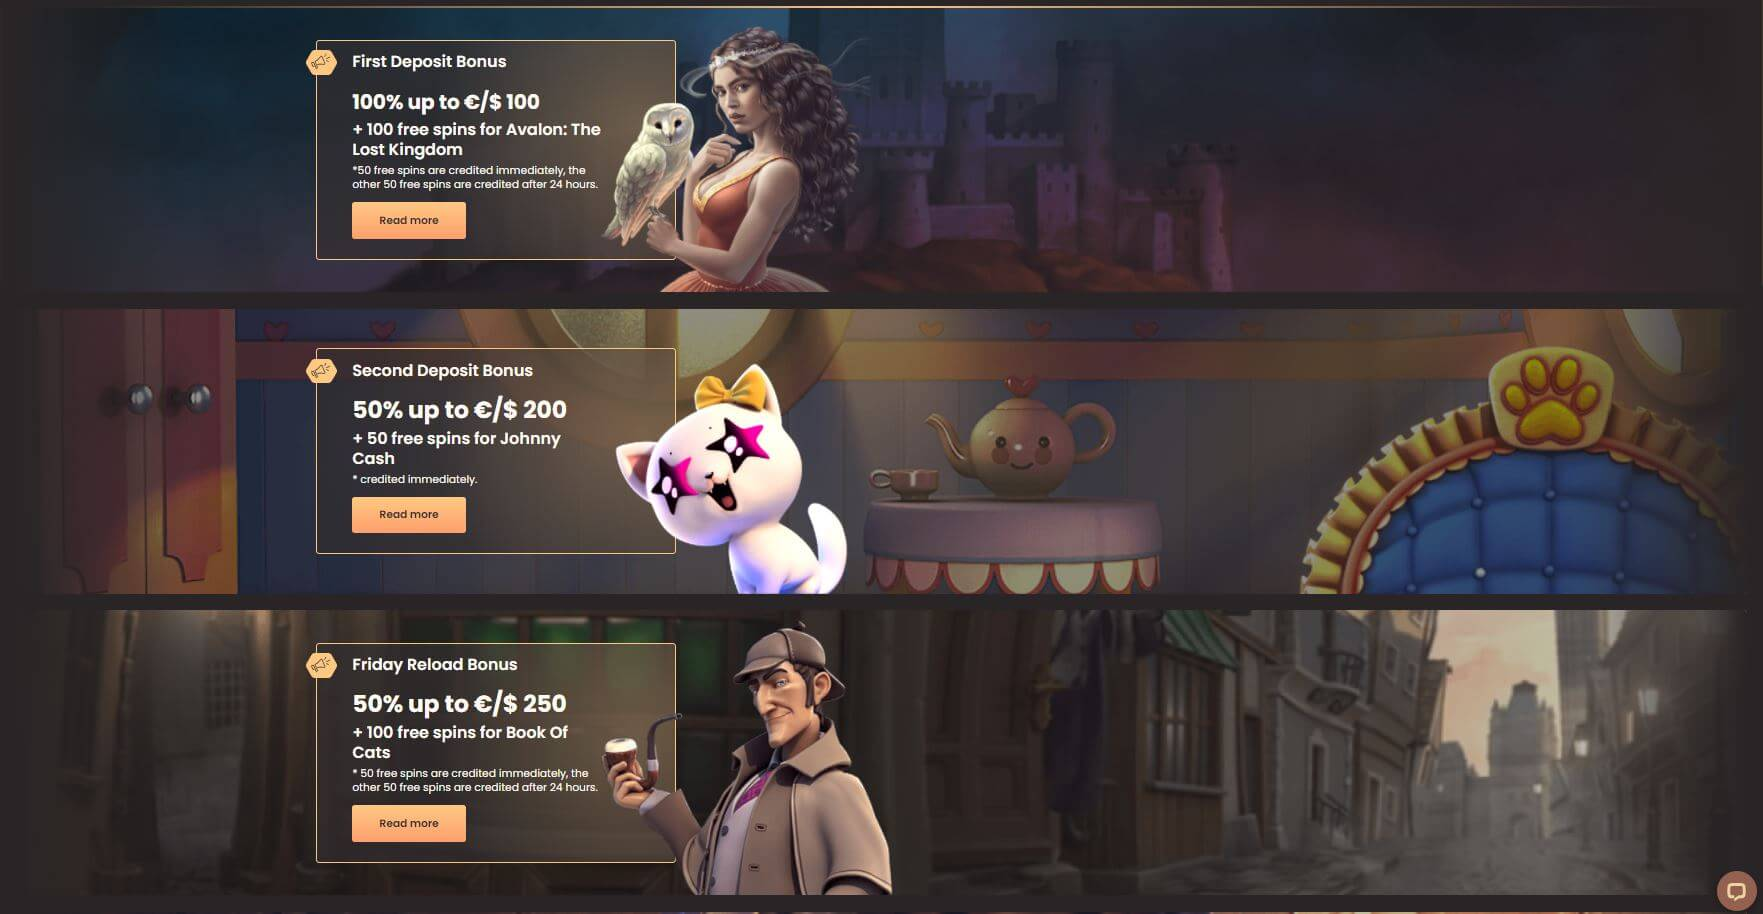 National Casino Promotions